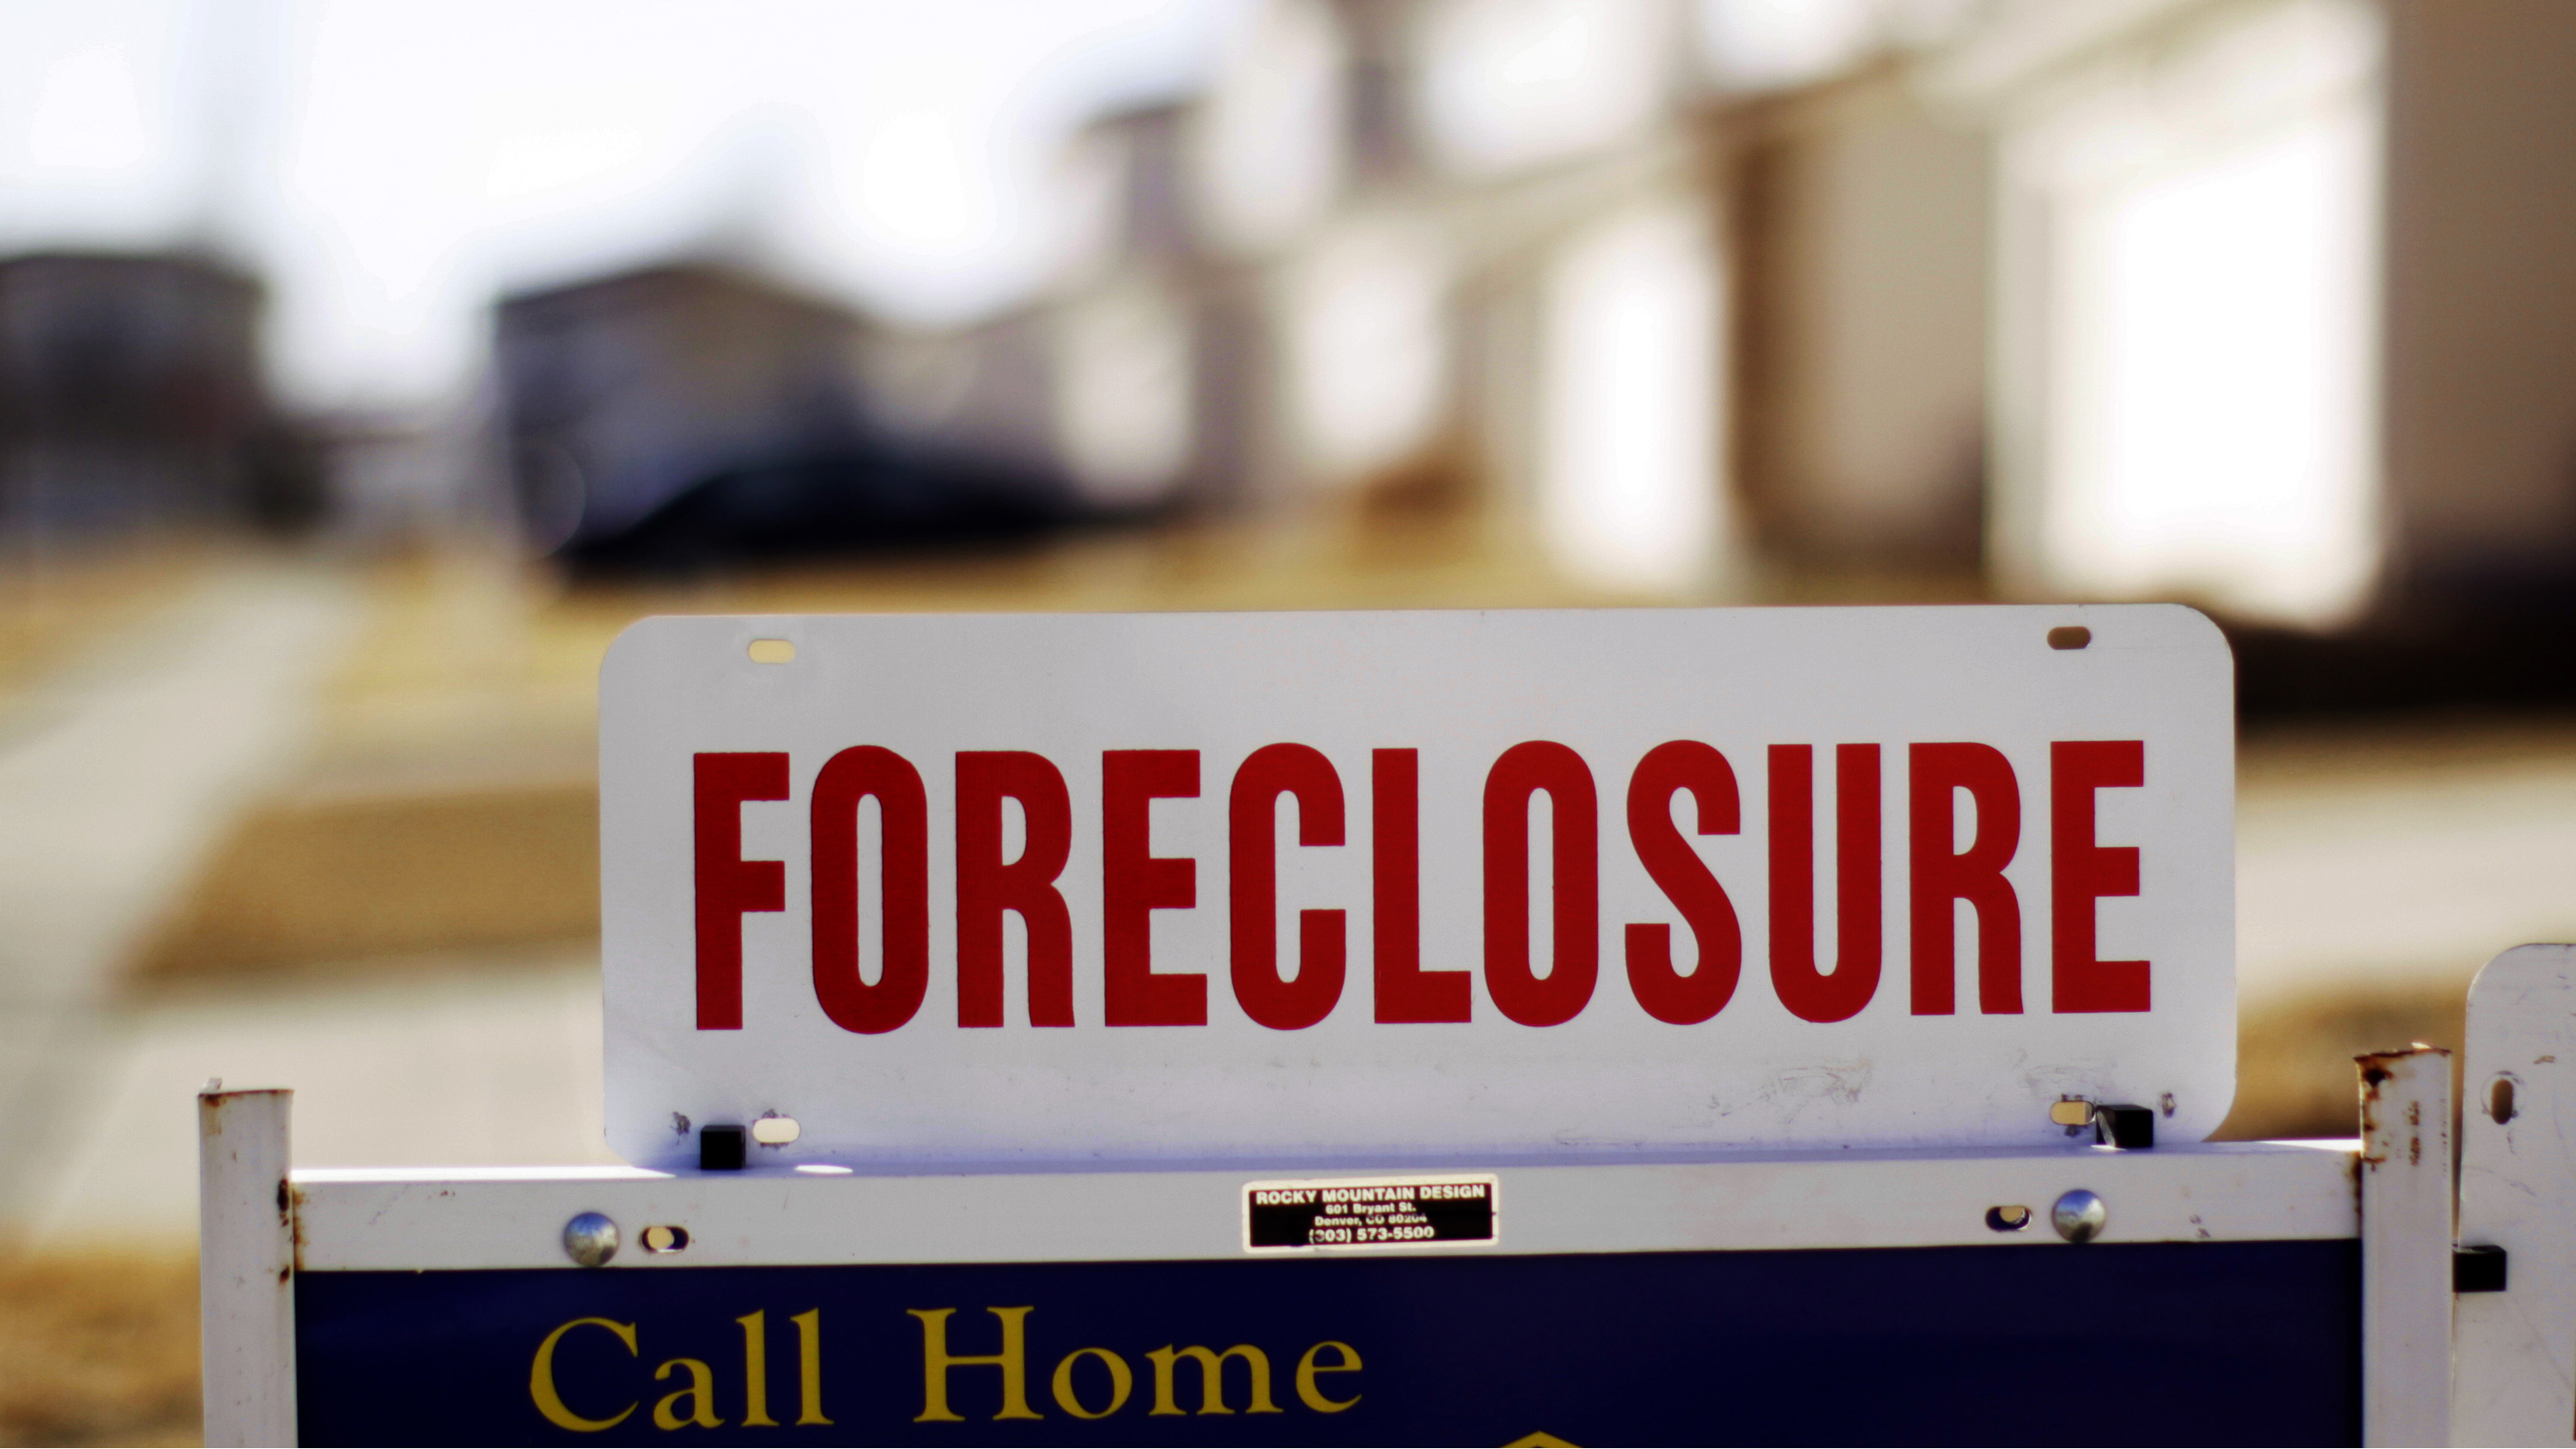 """The sign for a foreclosed house for sale sits at the property in Denver, Colorado March 4, 2009. The Obama administration on Wednesday launched a $75 billion foreclosure relief plan, as new data showed one in five U.S. homeowners with mortgages owe more than their house is worth. The mortgage plan, part of a $275 billion housing stimulus program announced last month, enables struggling homeowners to modify loans even if they are """"under water."""" REUTERS/Rick Wilking"""